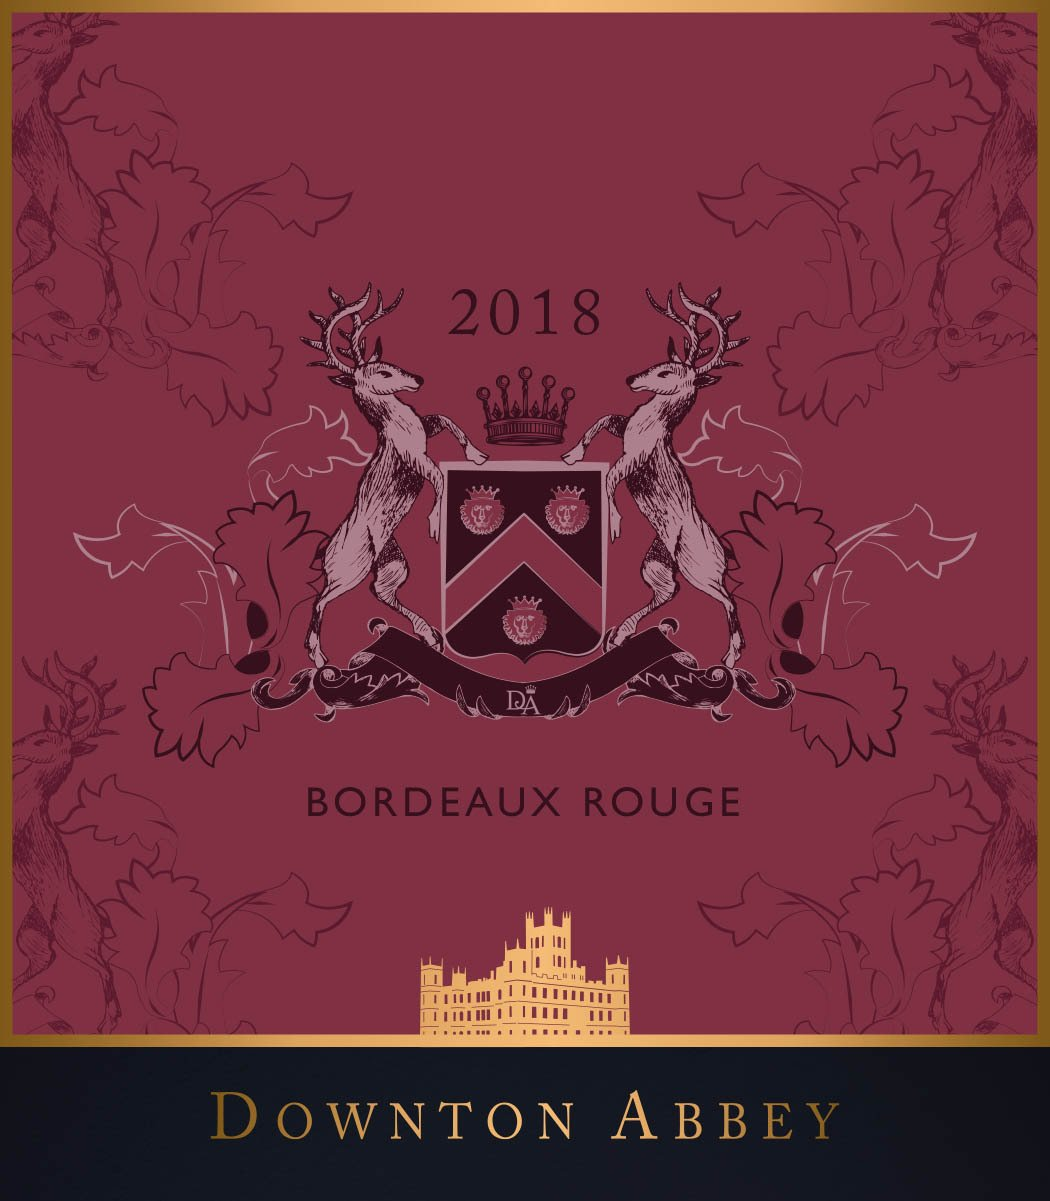 Downton Abbey Red Wine Bordeaux